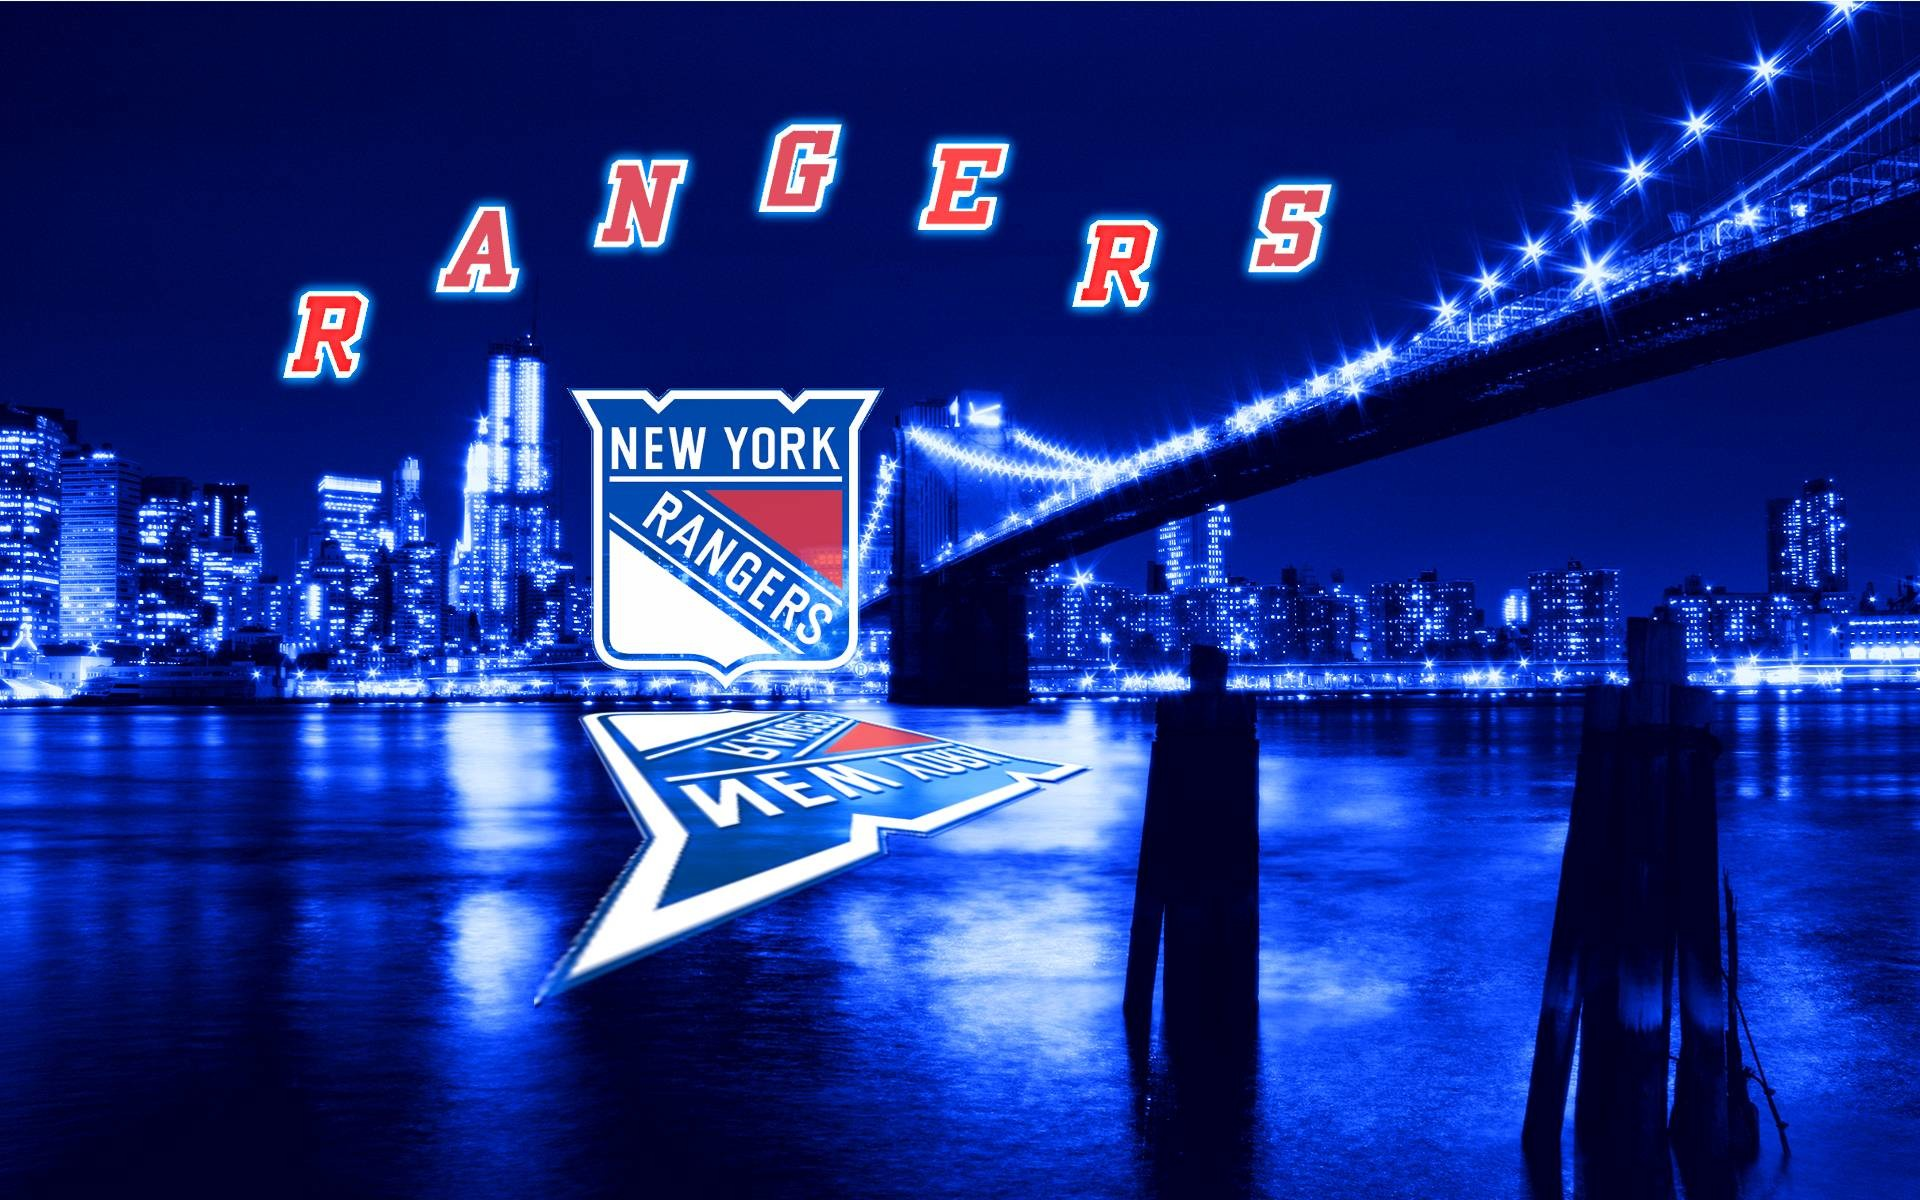 1920x1200 New York Rangers Wallpapers - Full HD wallpaper search